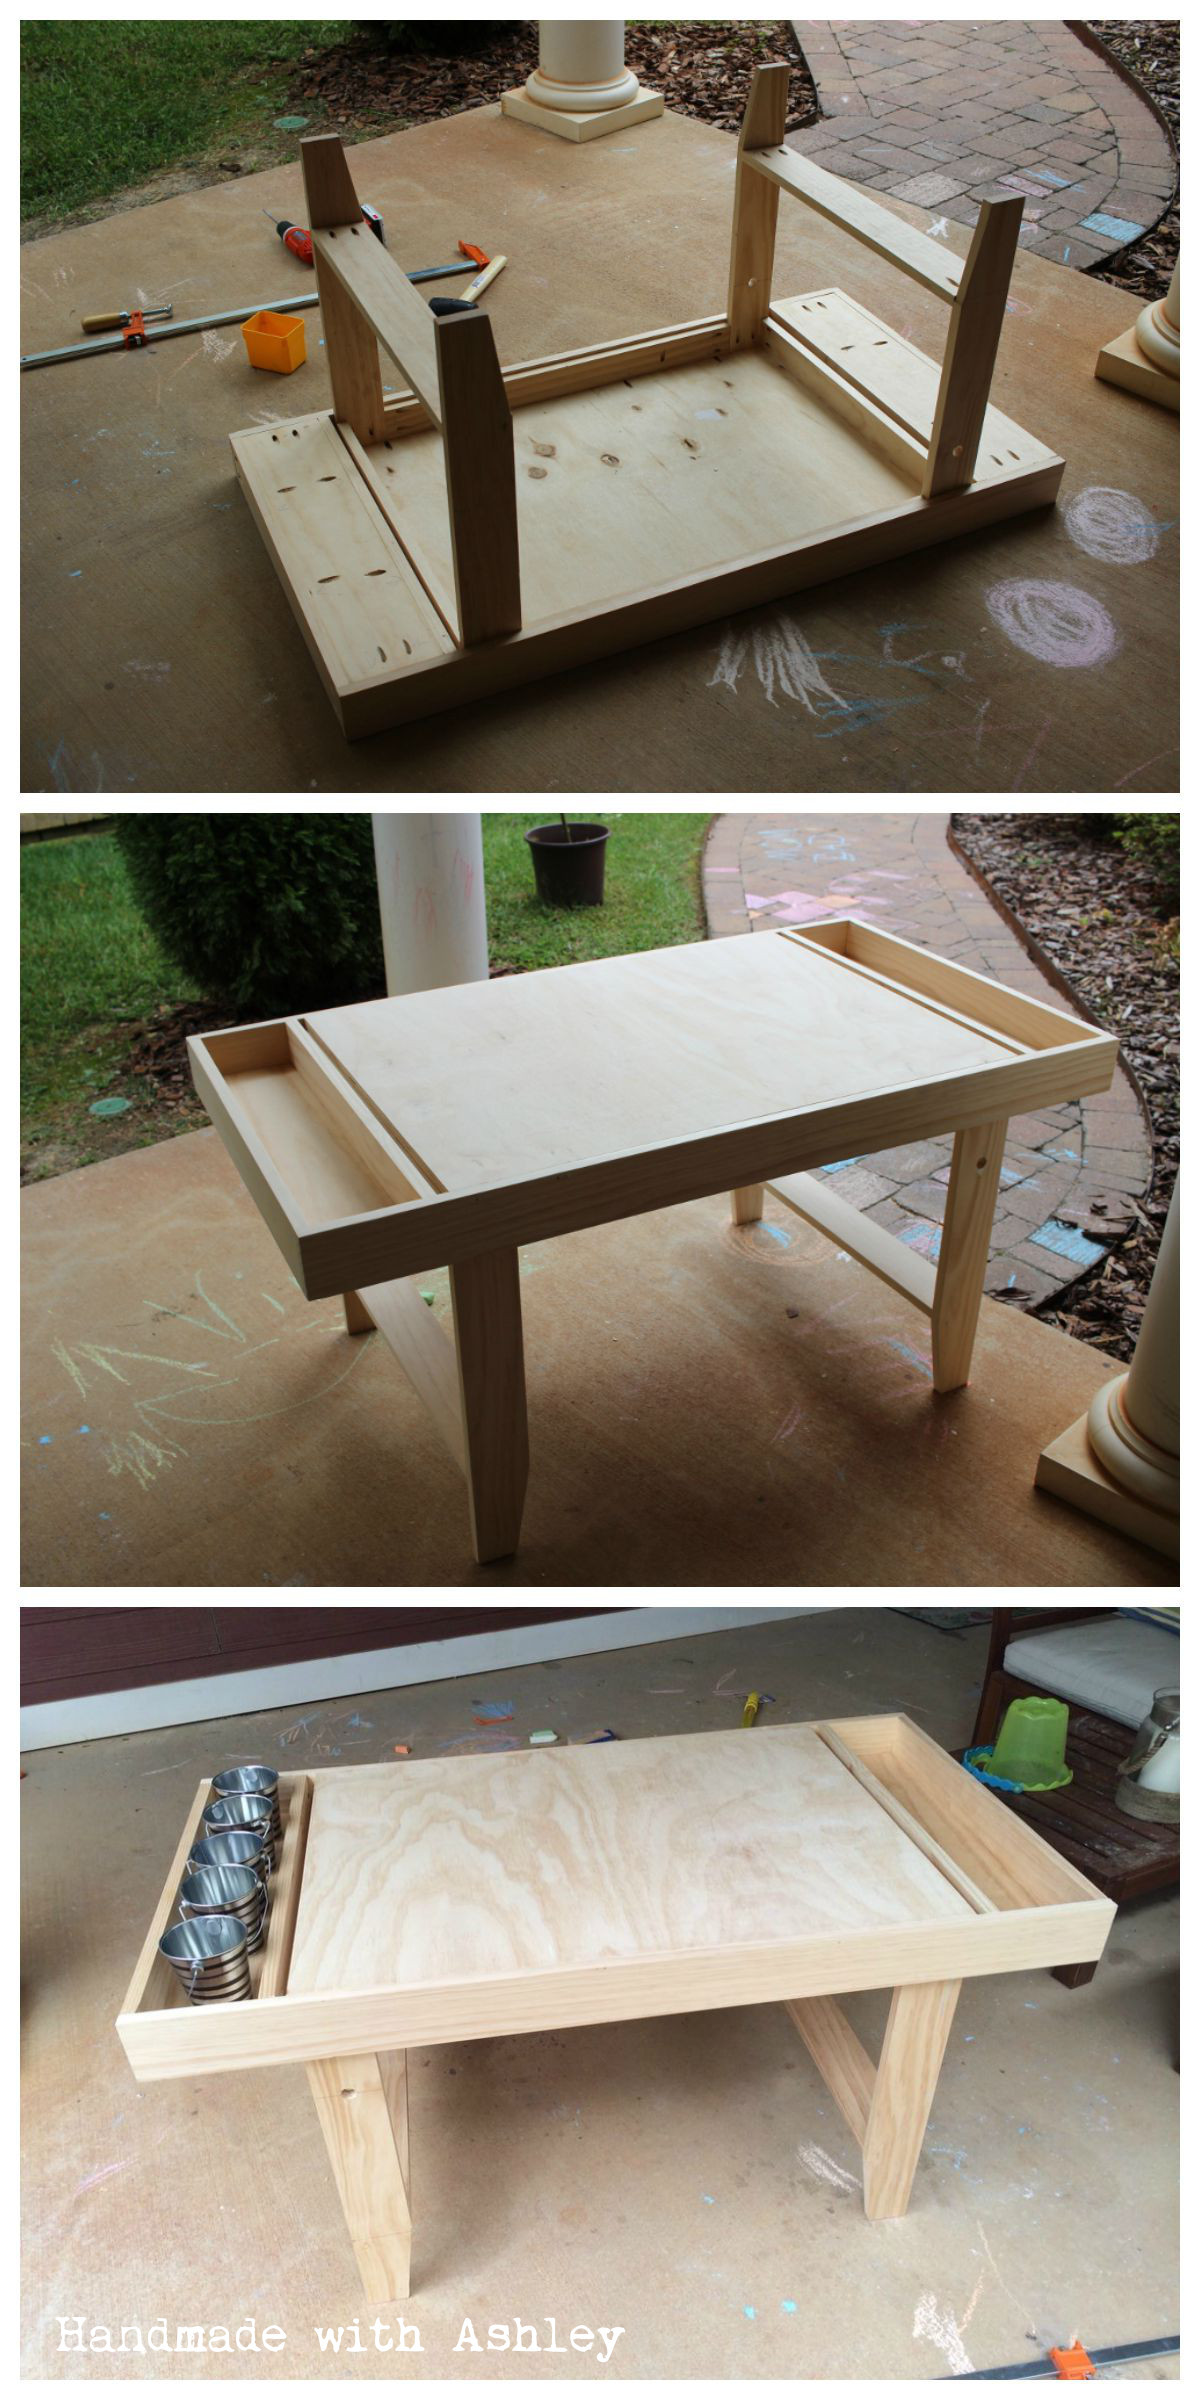 Best ideas about DIY Kids Table . Save or Pin Ana White Now.